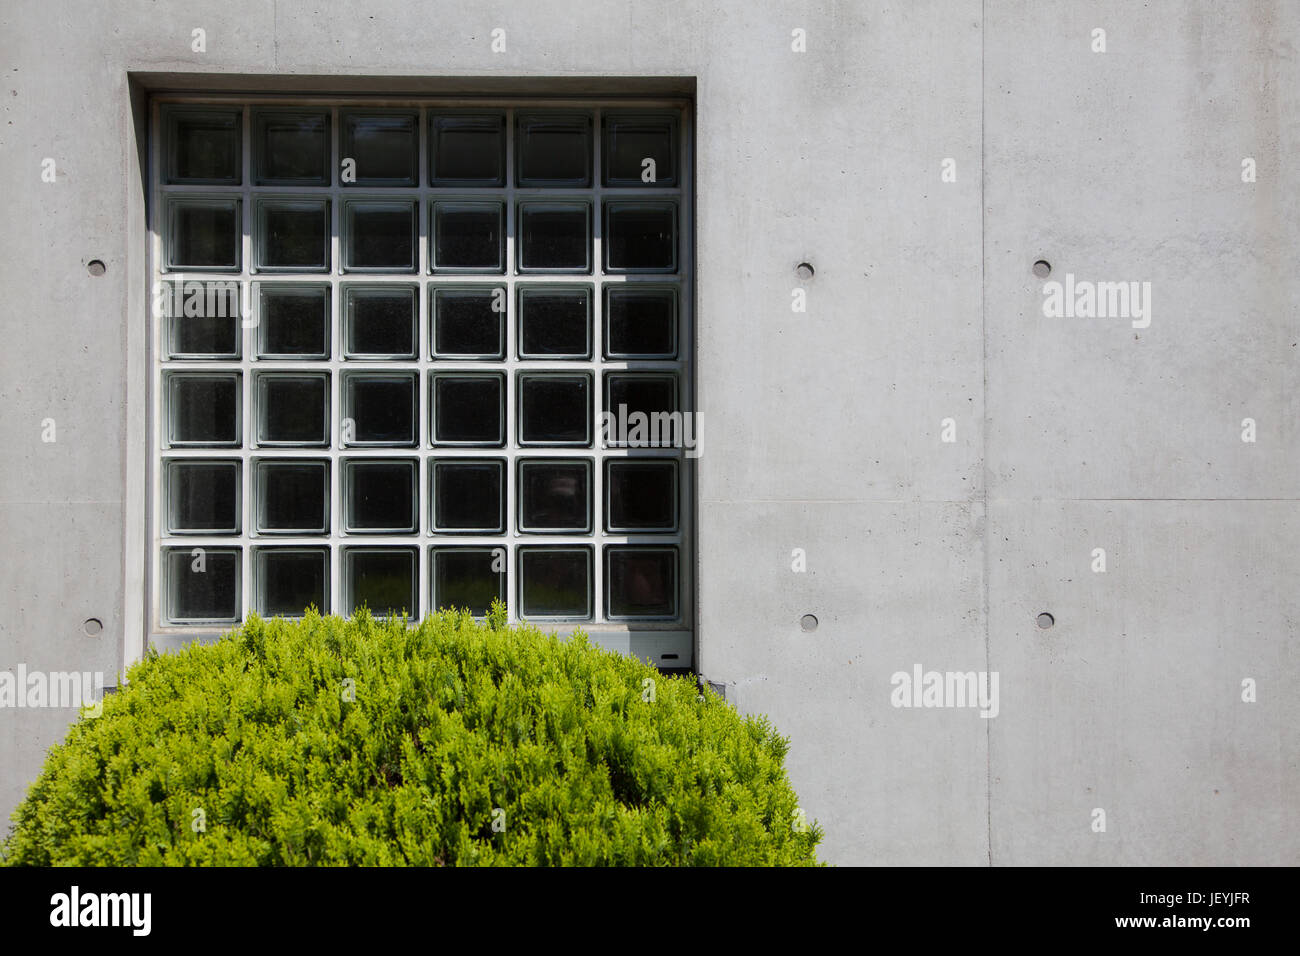 A window and a bush in Ebisu, Tokyo, Japan. Friday May 30th 2014 - Stock Image